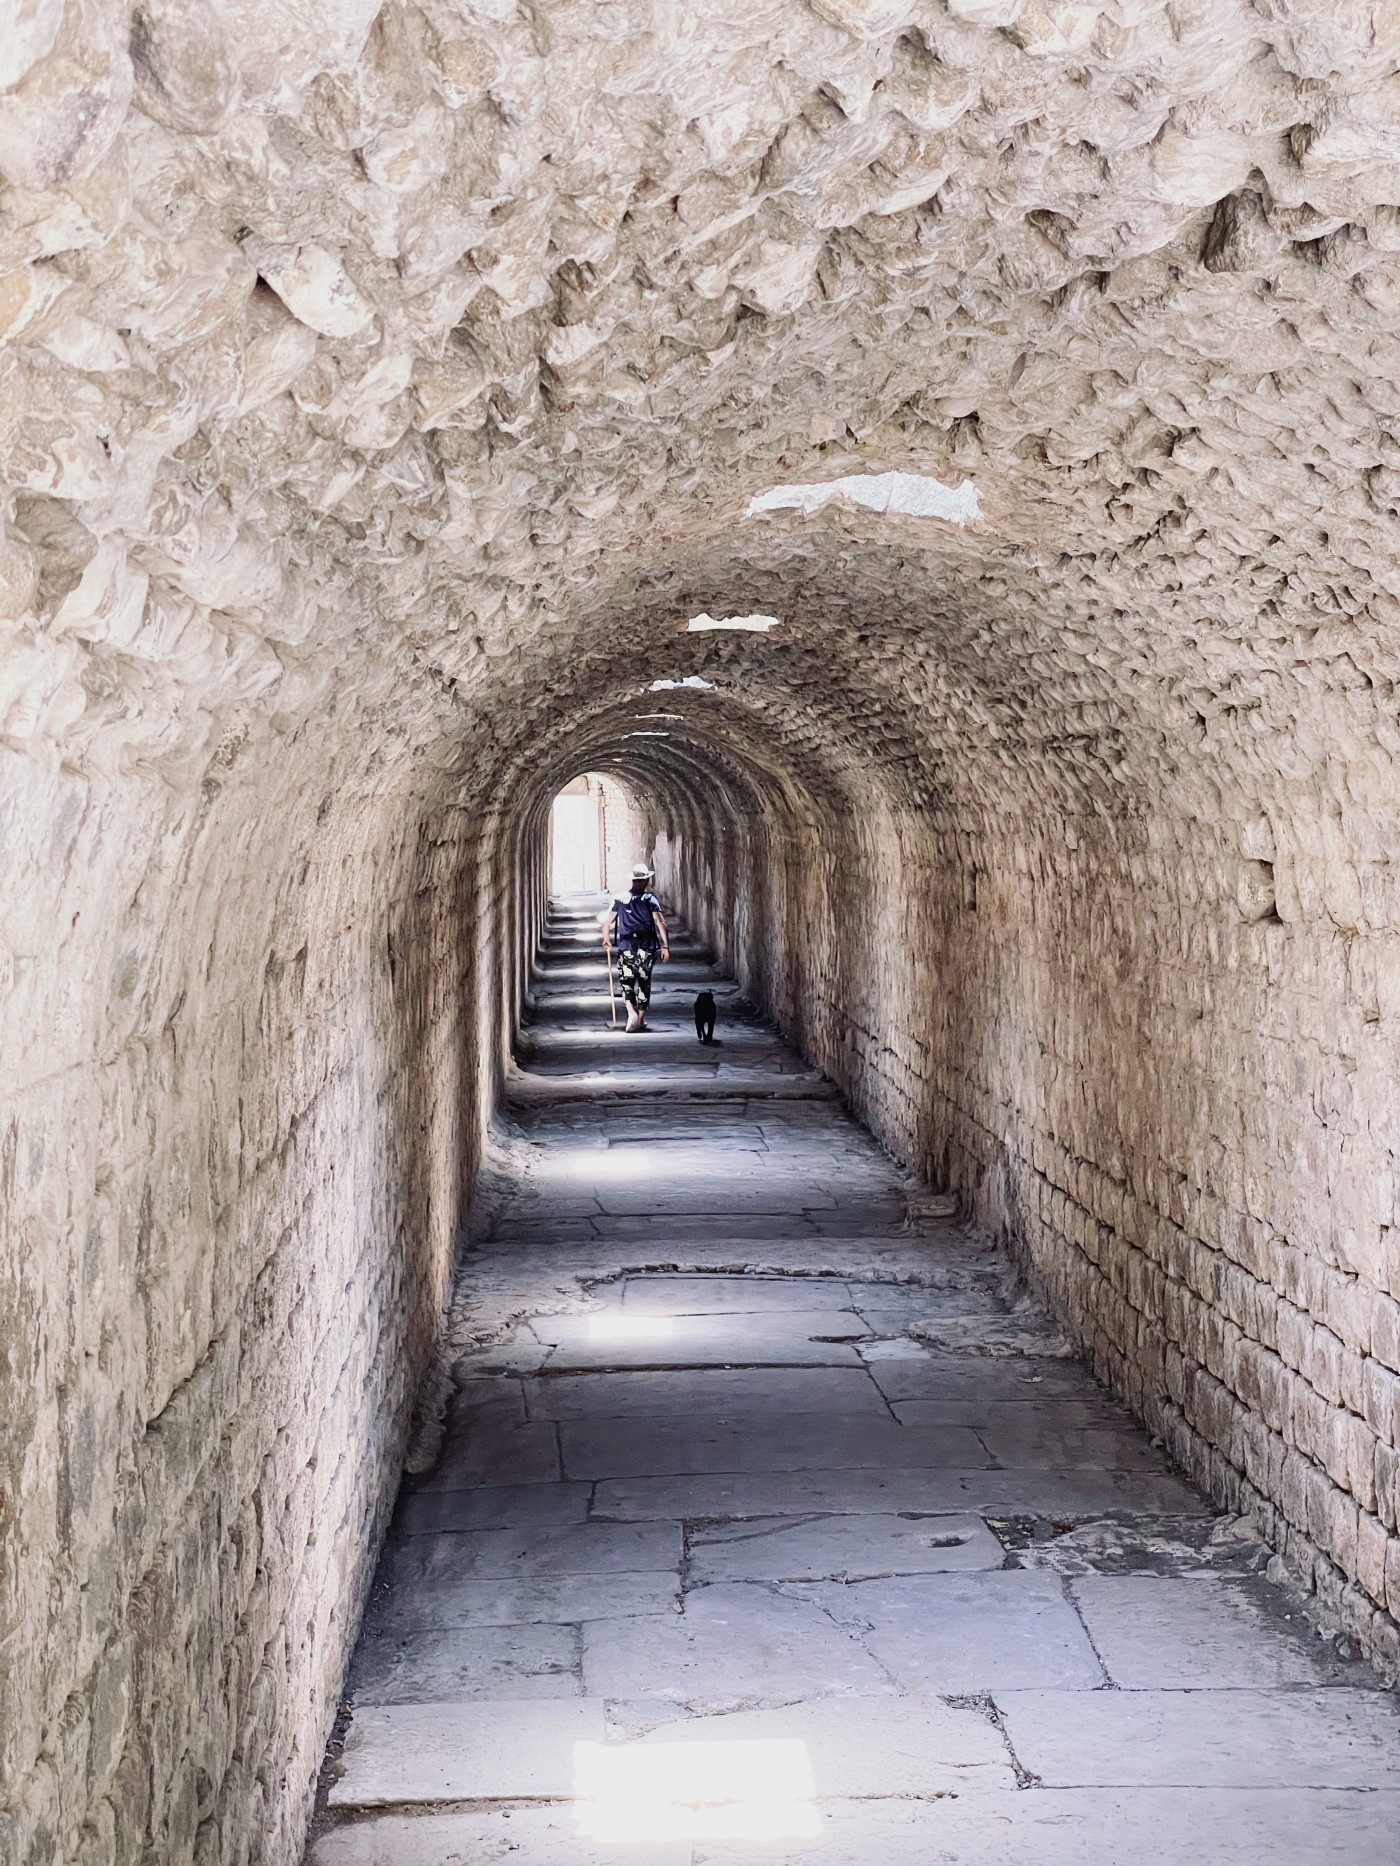 Long stone tunnel of the antique hospital of Asclepieion. Man and his dog walking.